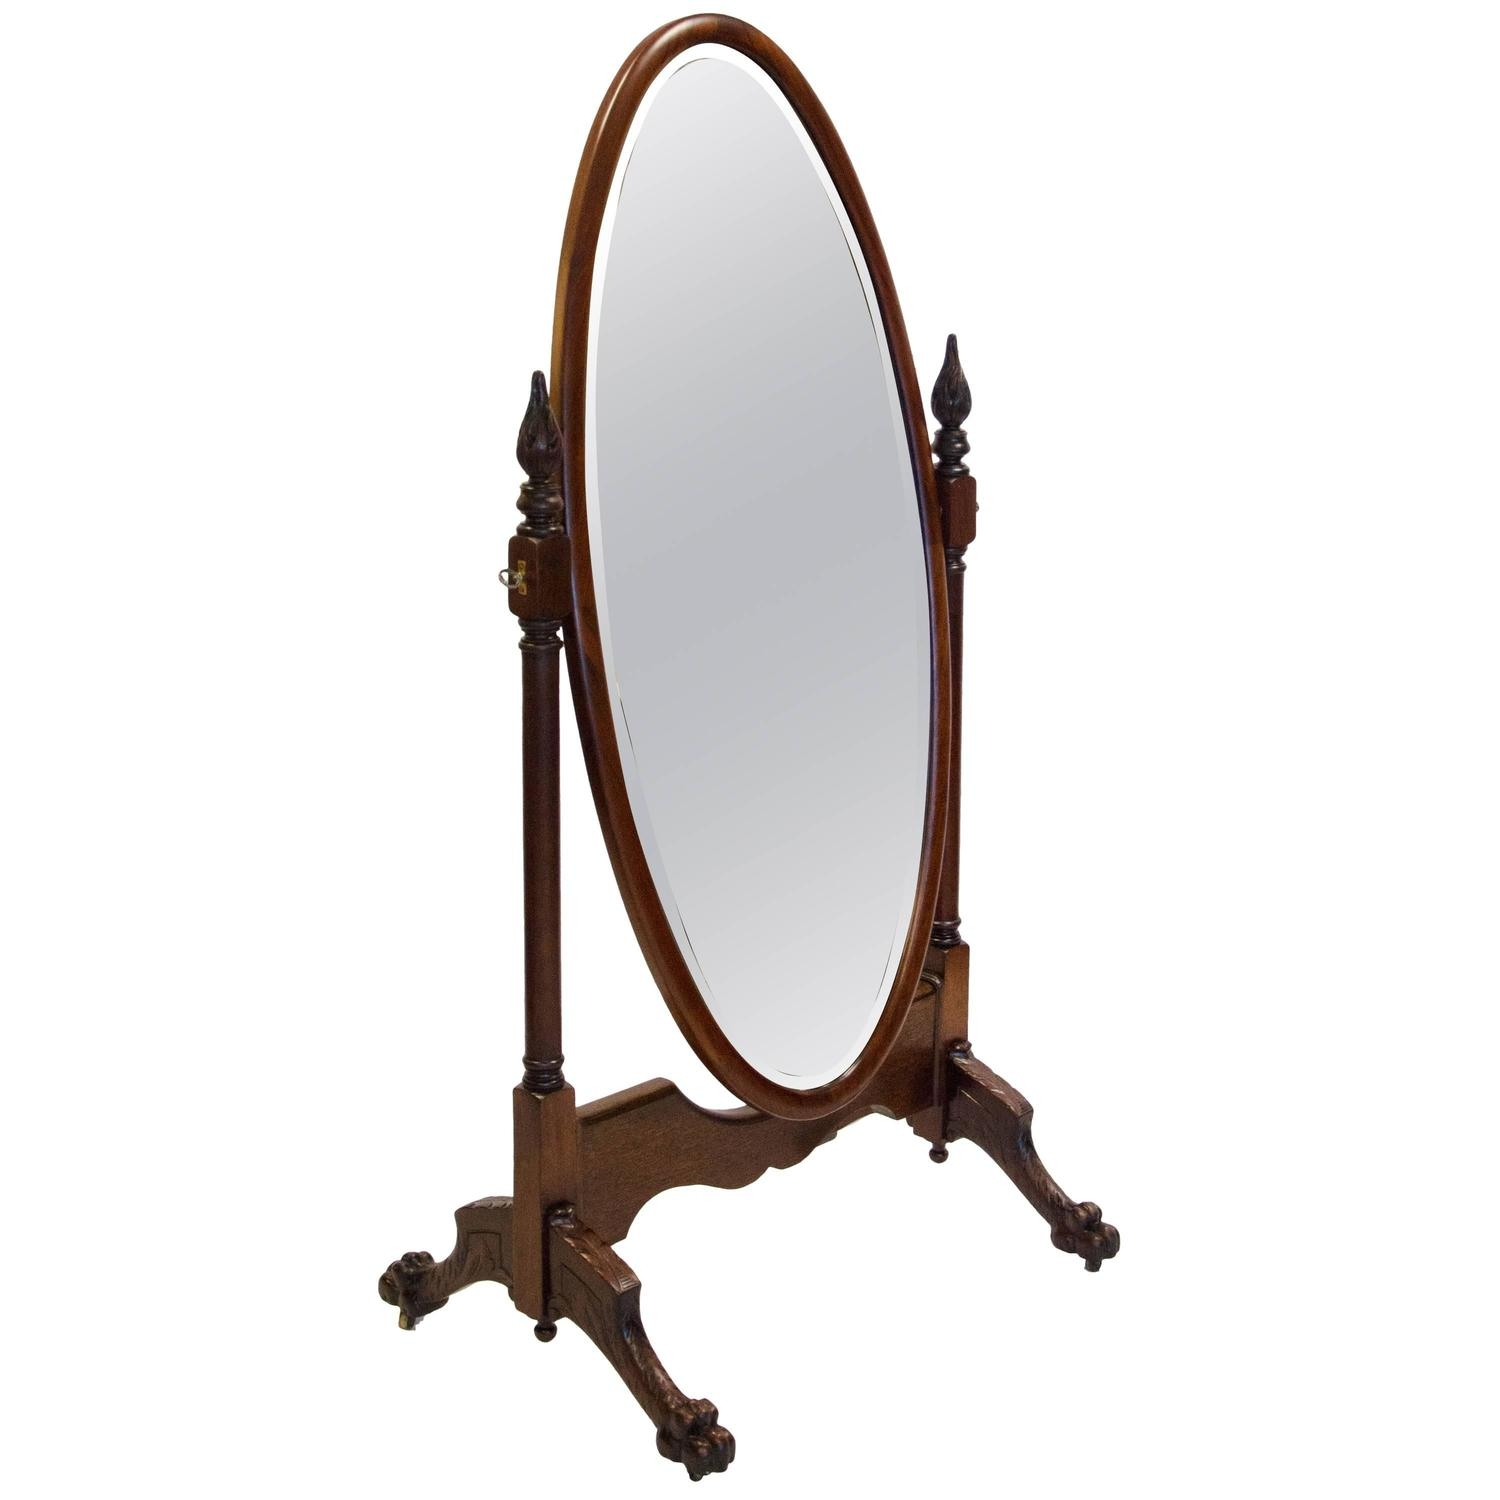 Antique Mahogany Cheval Dressing Mirror For Sale At 1stdibs Throughout Antique Dressing Mirror Full Length (Image 5 of 15)